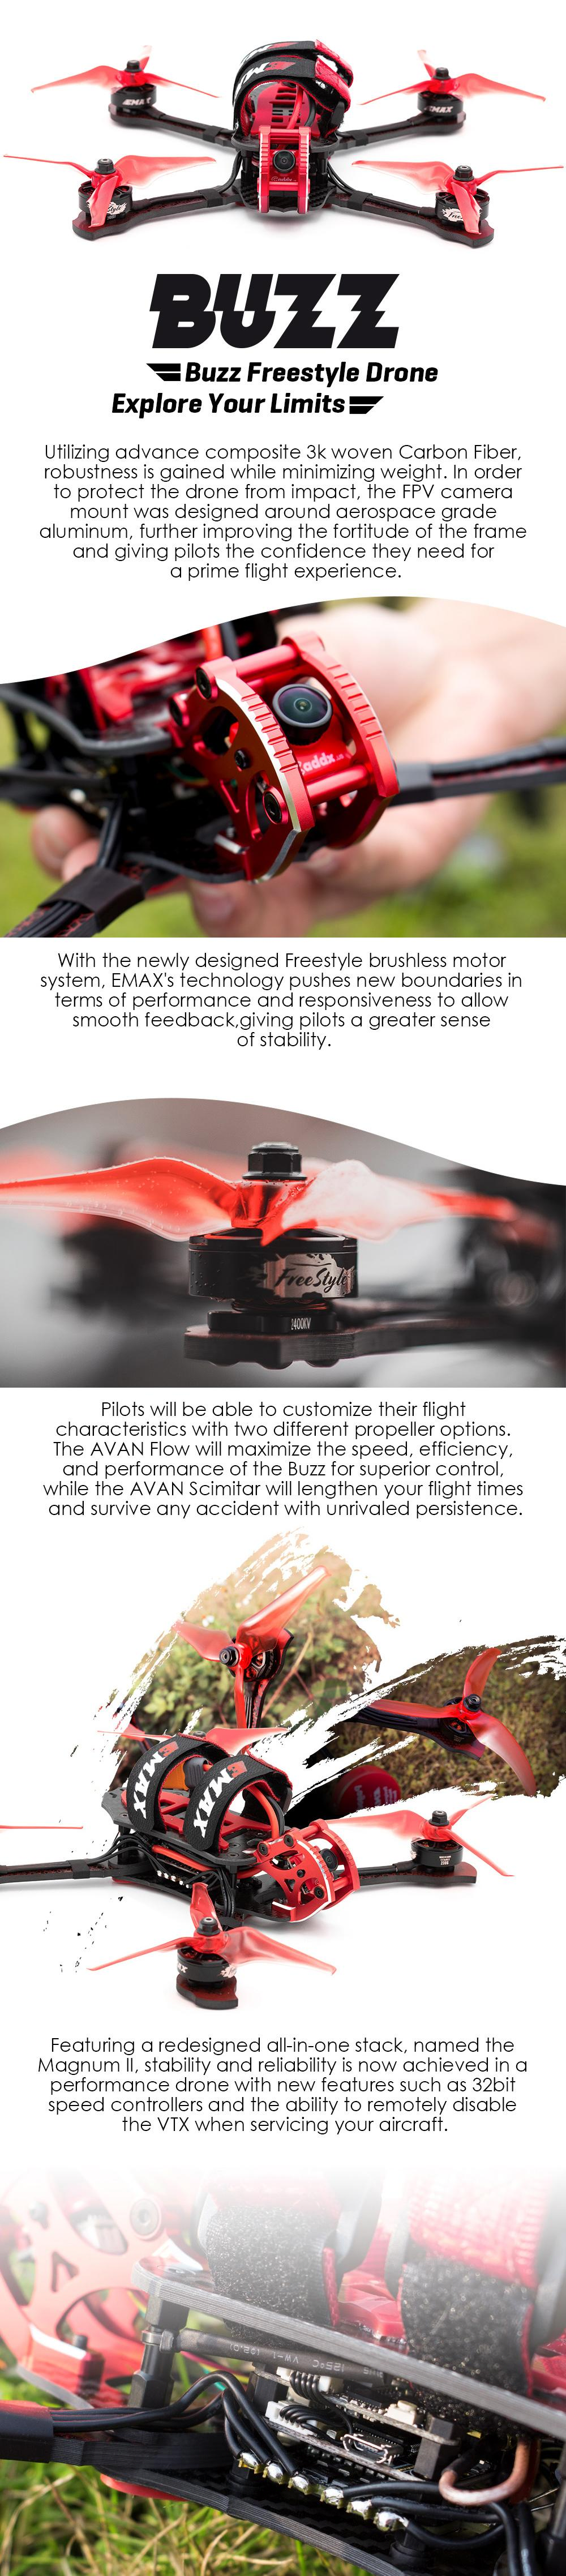 "EMAX BUZZ 5"" 1700Kv/2400Kv PNP Freestyle Drone  information"